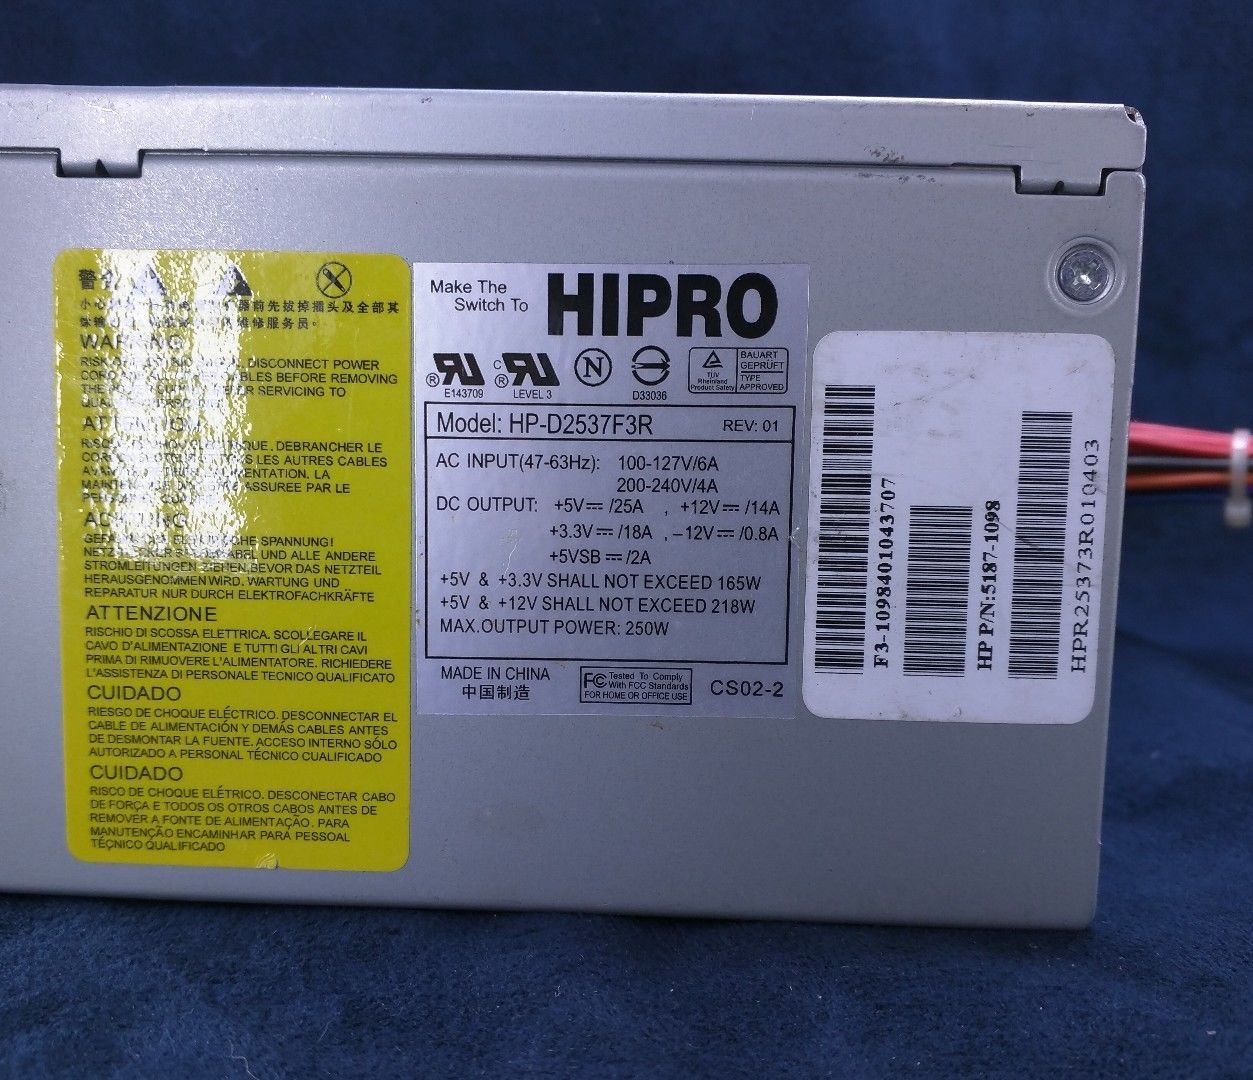 Bestec ATX-250-12Z HP 5187-1098 Replacement Power Supply for Hipro HP-D2537F3R